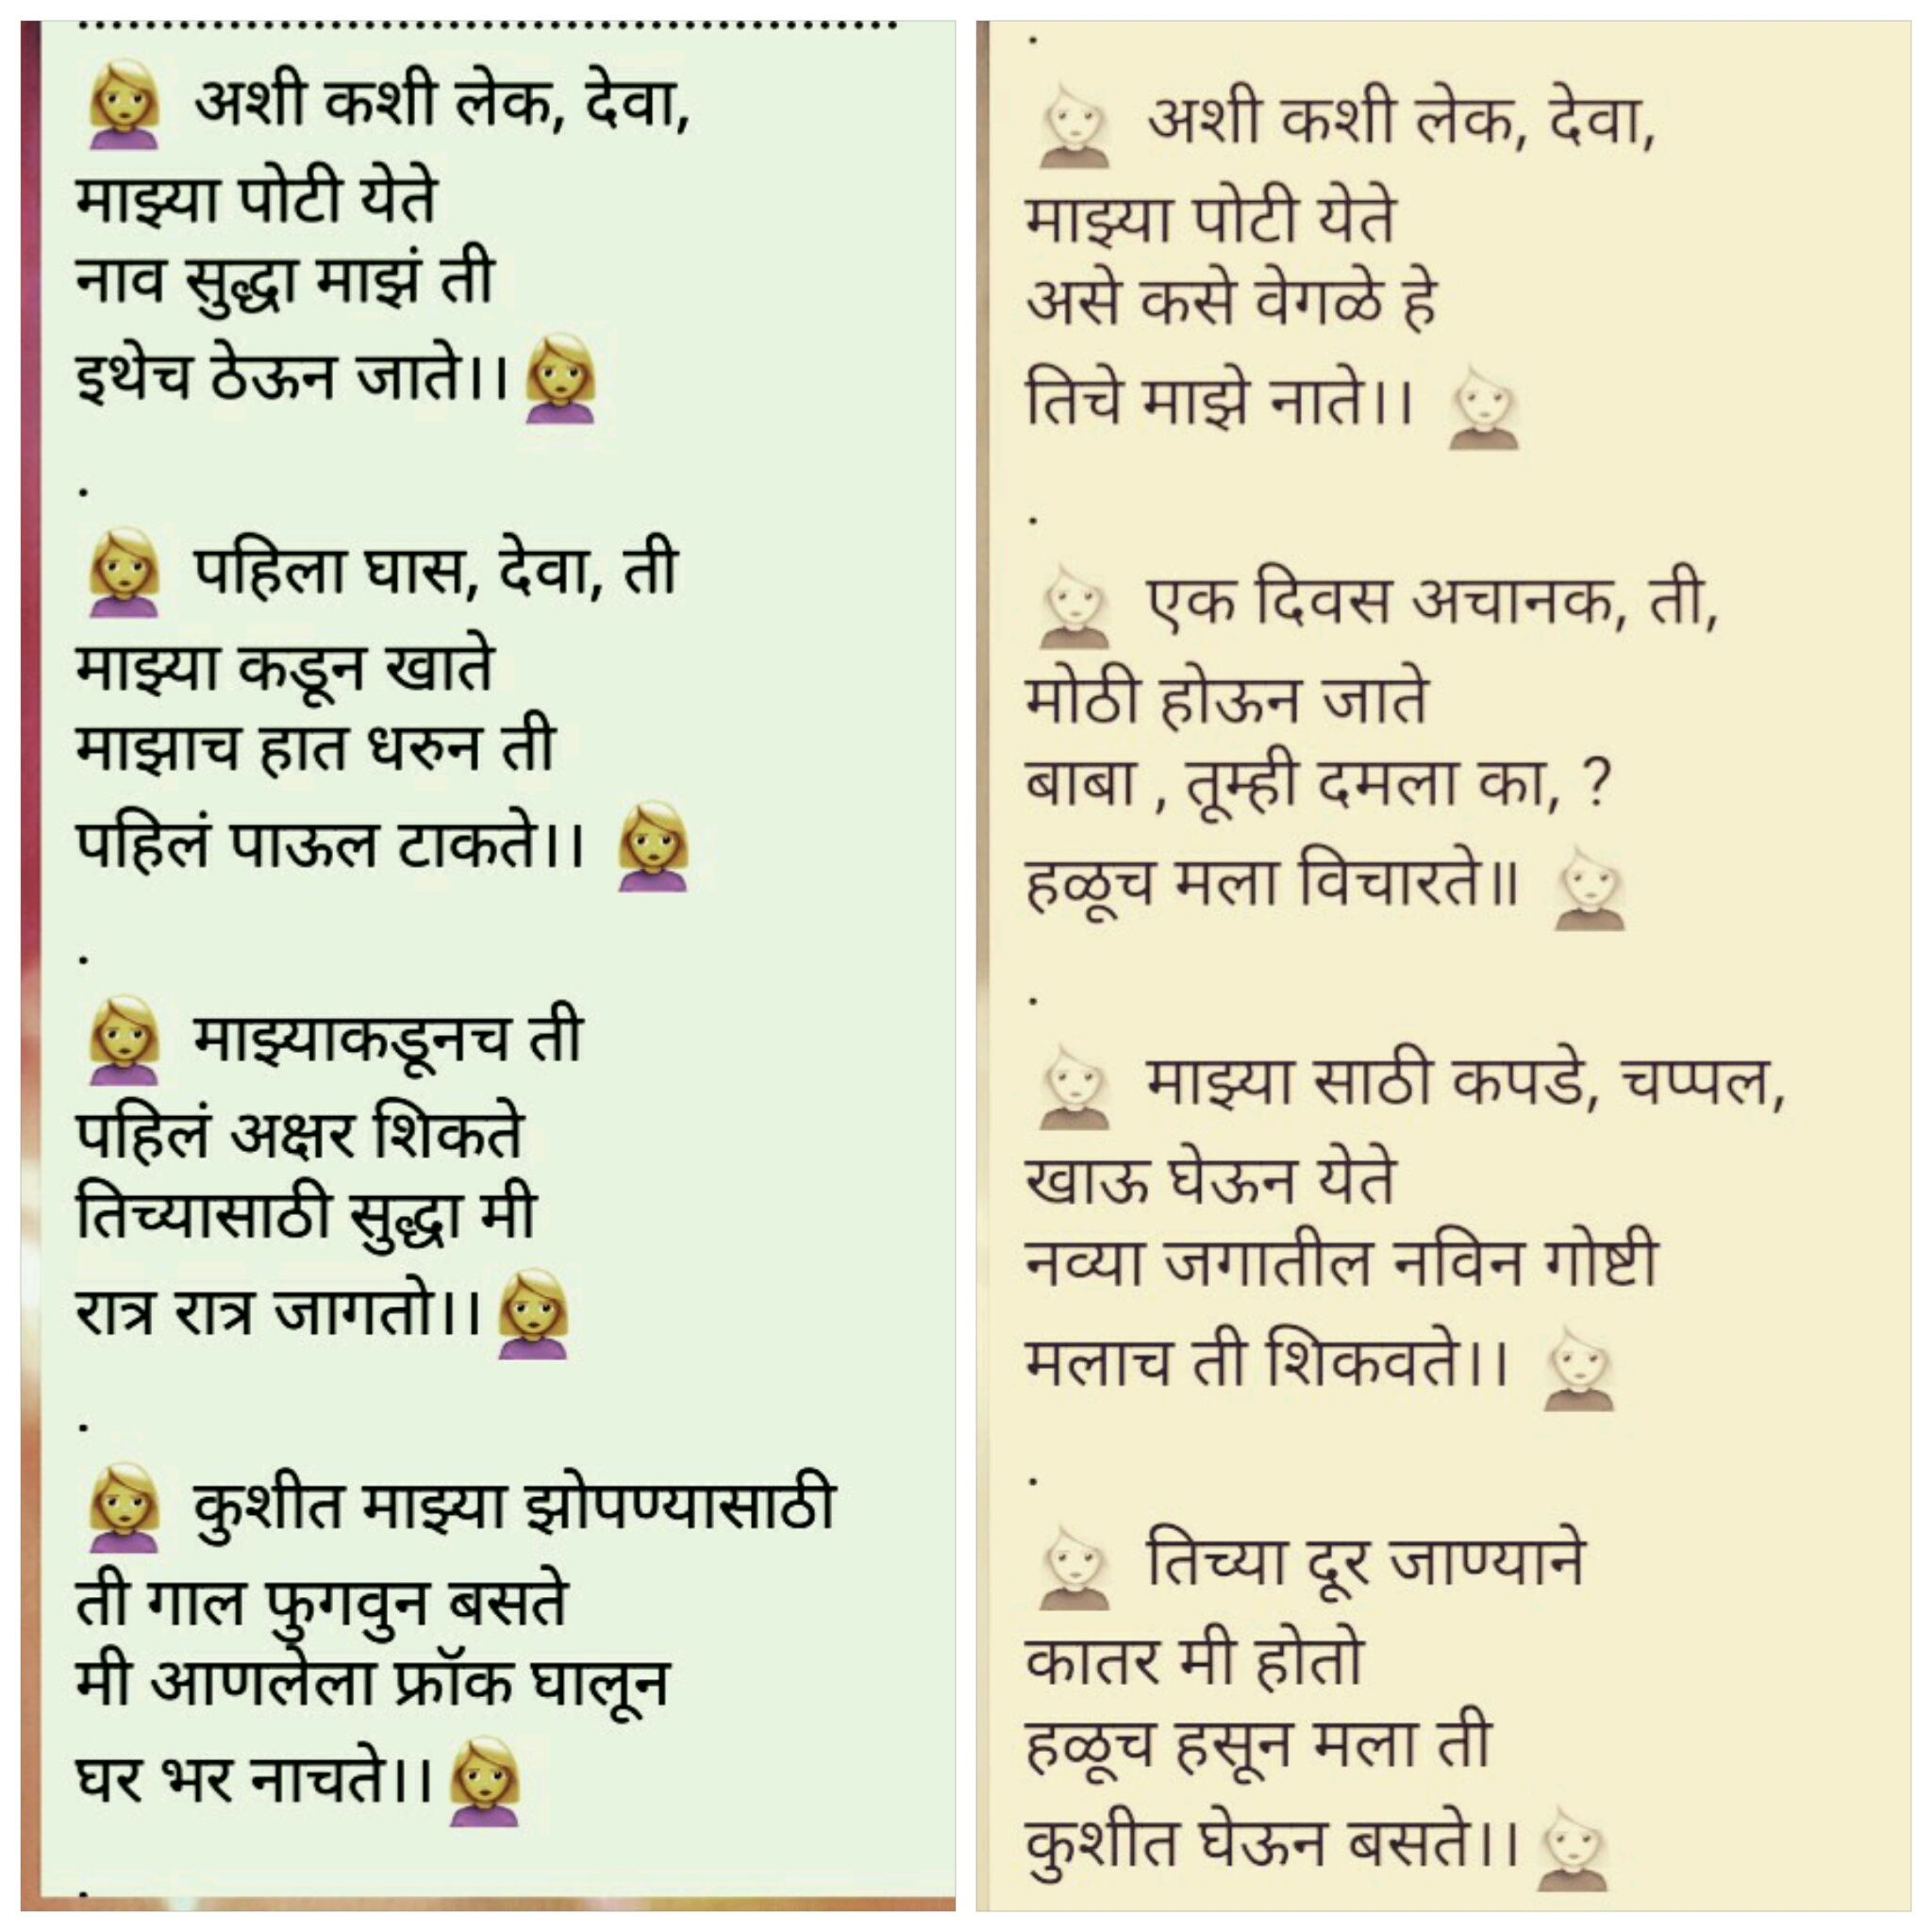 A Beautiful Marathi Poem A Father On Having A Daughter Daughters